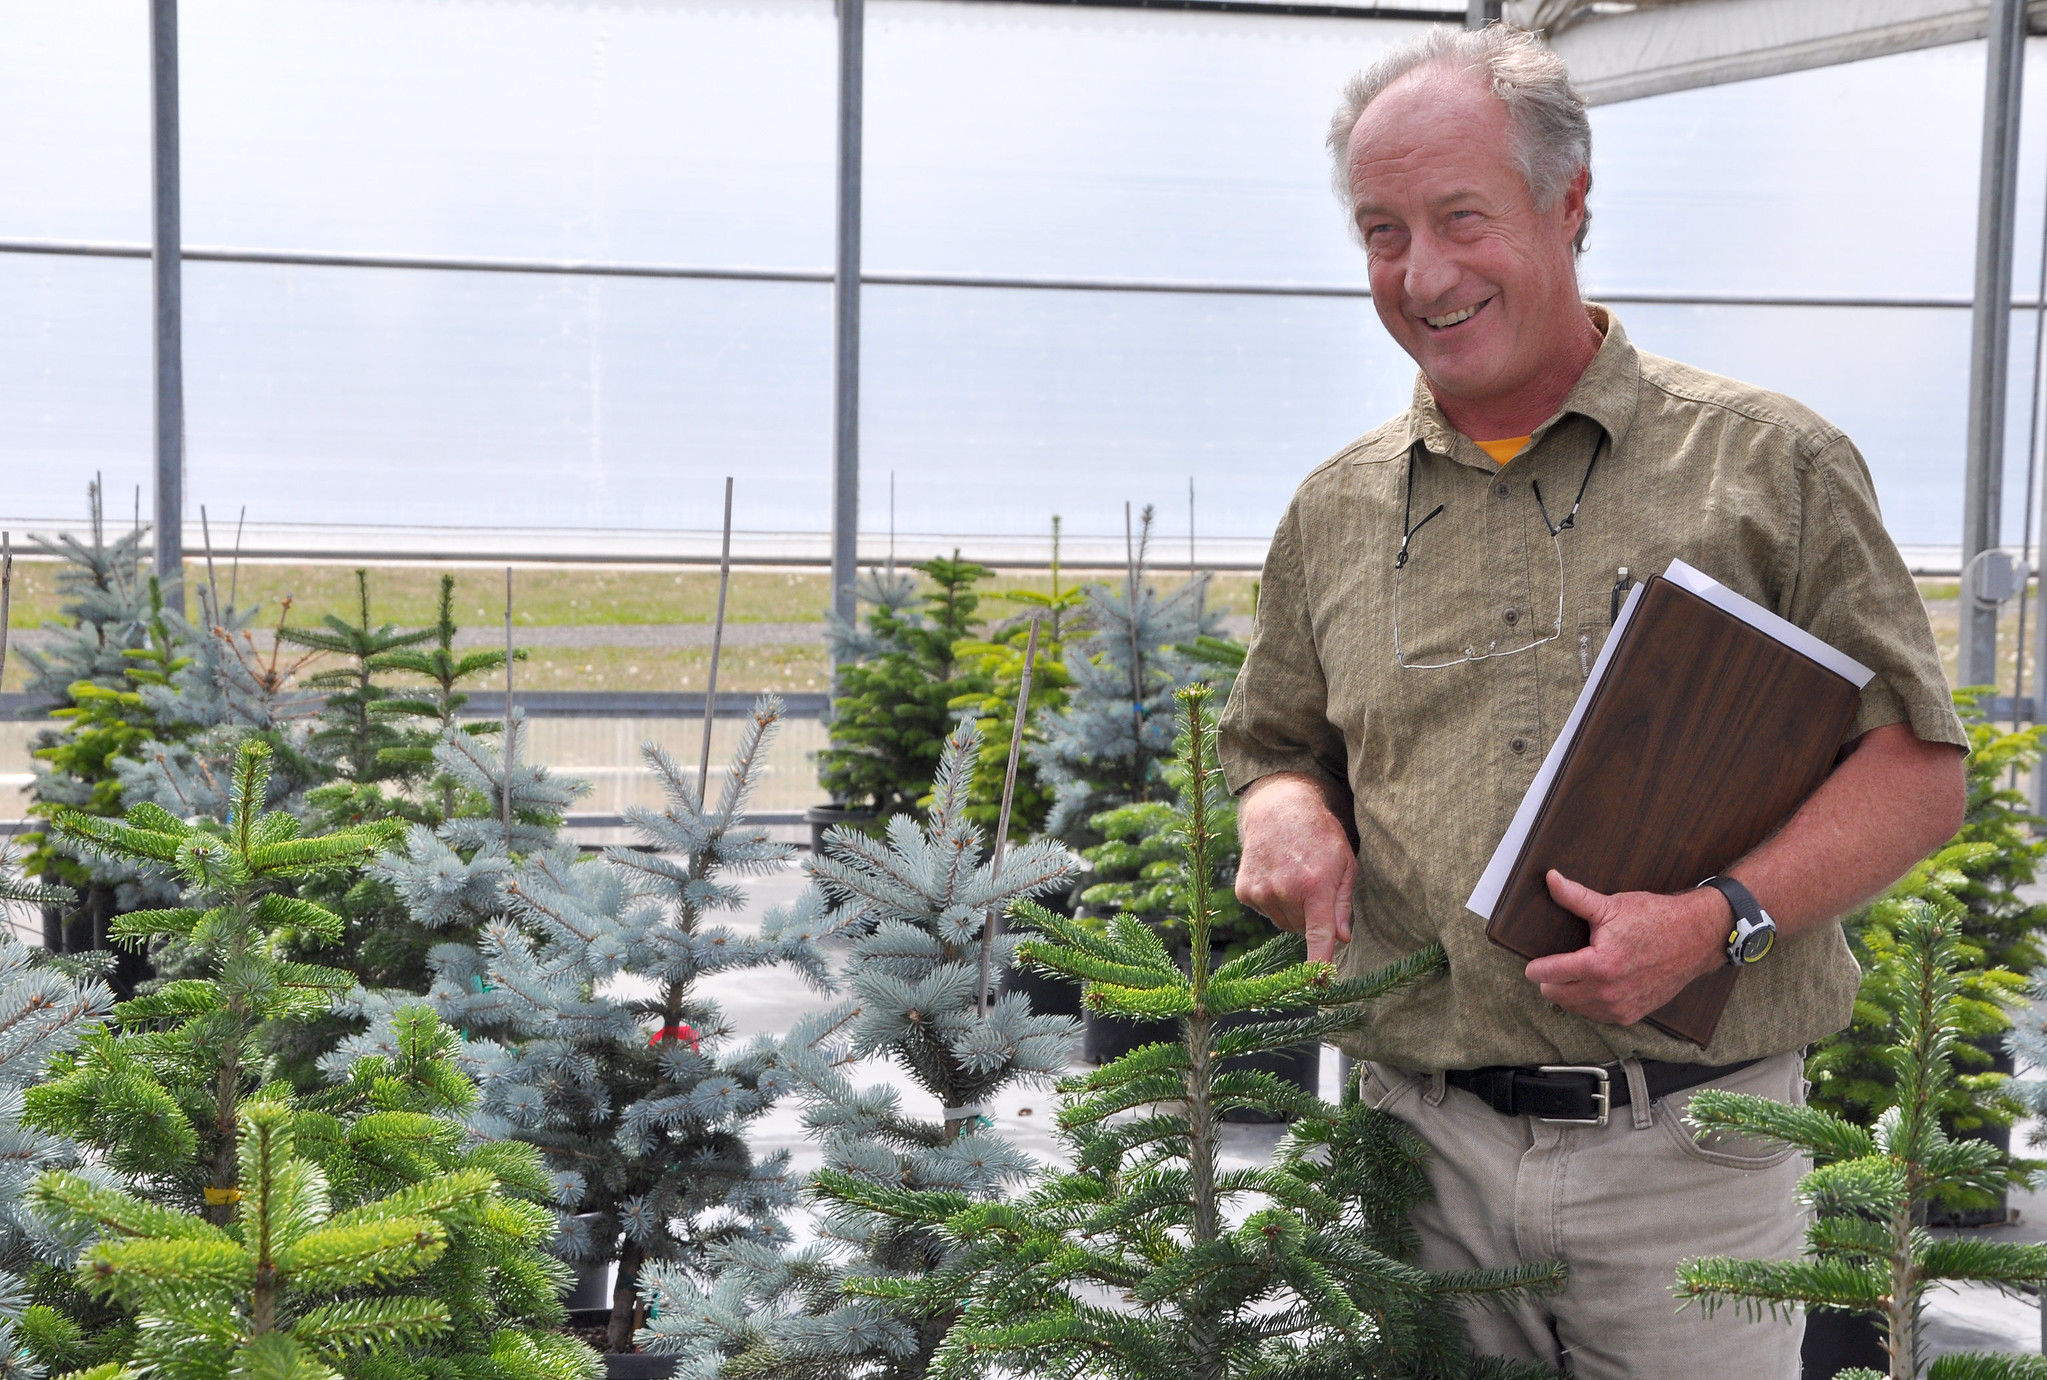 Some U-cut Christmas tree farms closed but supply adequate